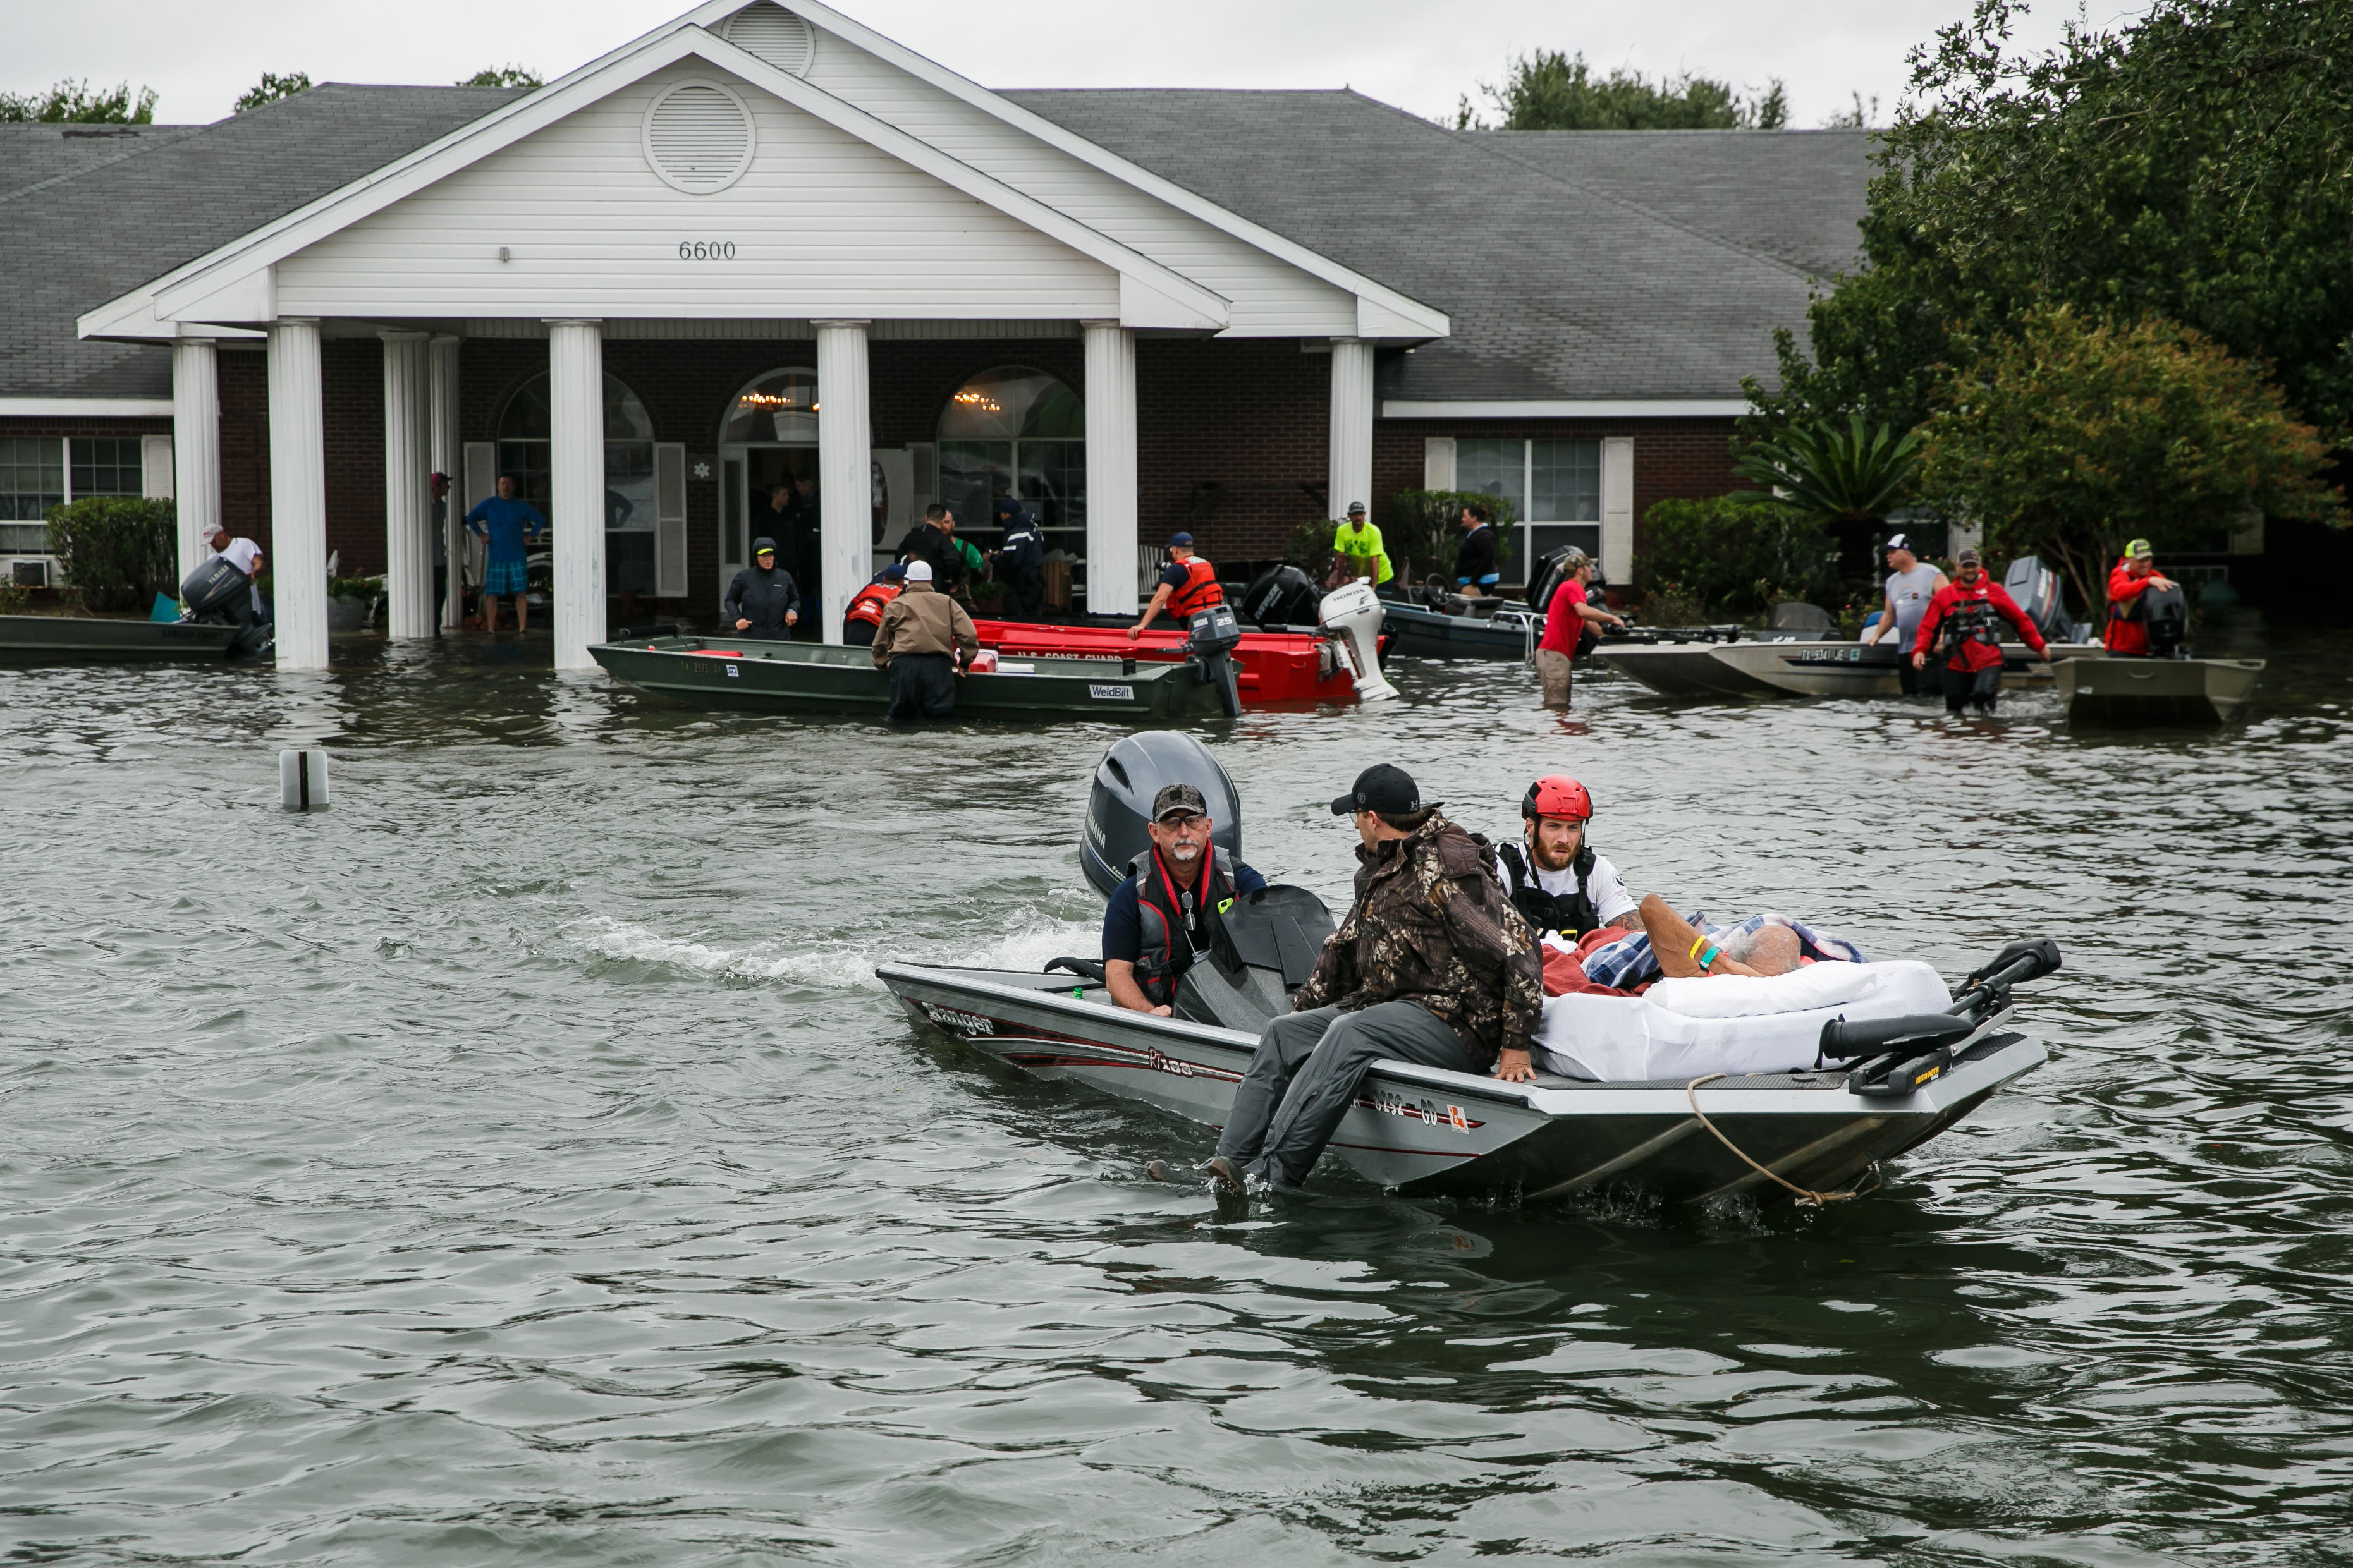 Search and rescue volunteers rescue patients from the Cypress Glen nursing home engulf in floodwater in Port Arthur, Texas, on Aug. 30, 2017.